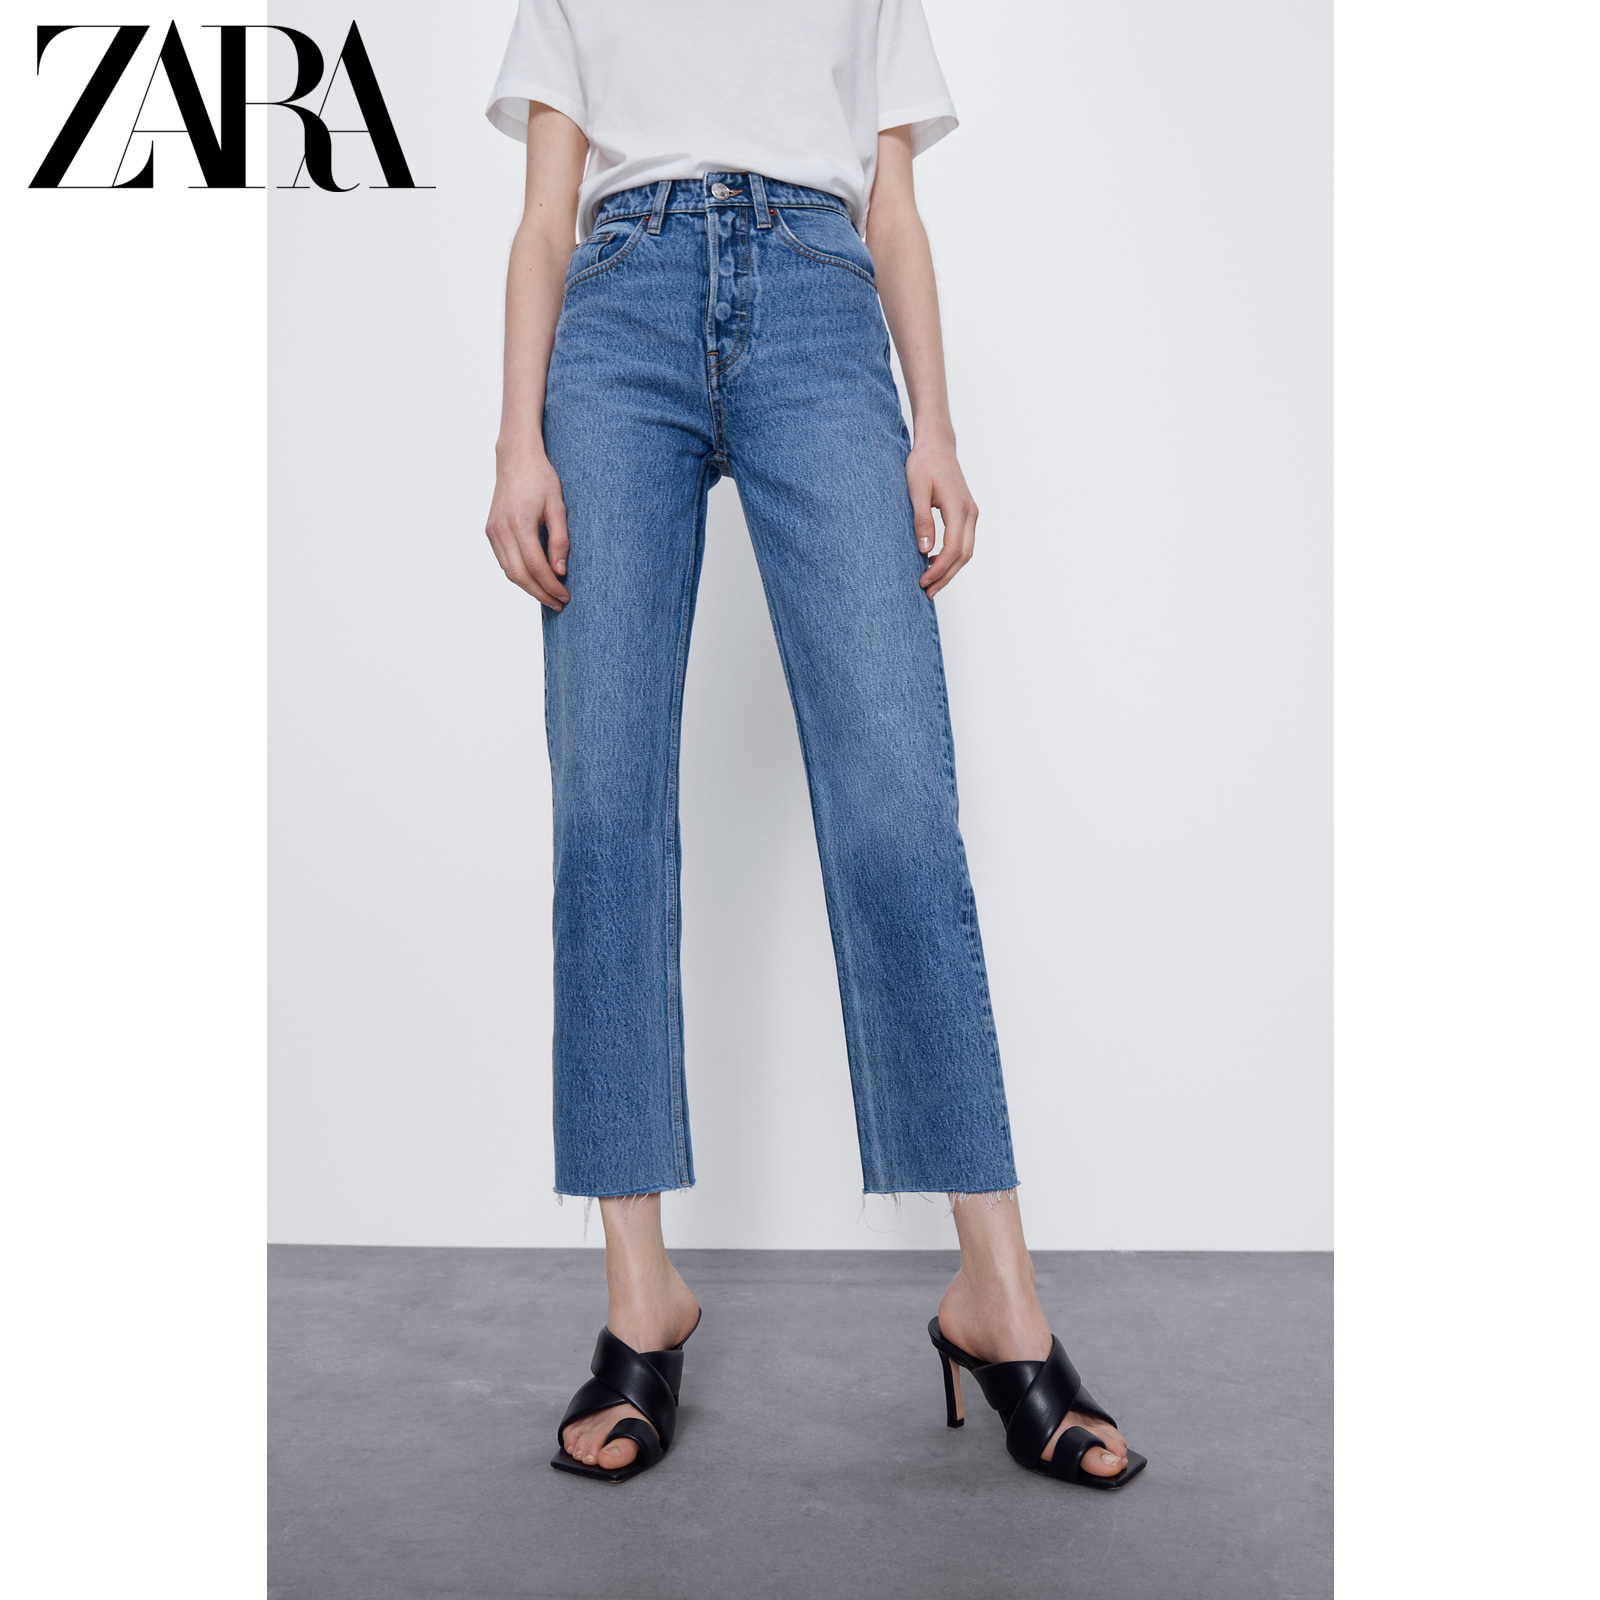 Zara new TRF women's straight high waist jeans 04365031401